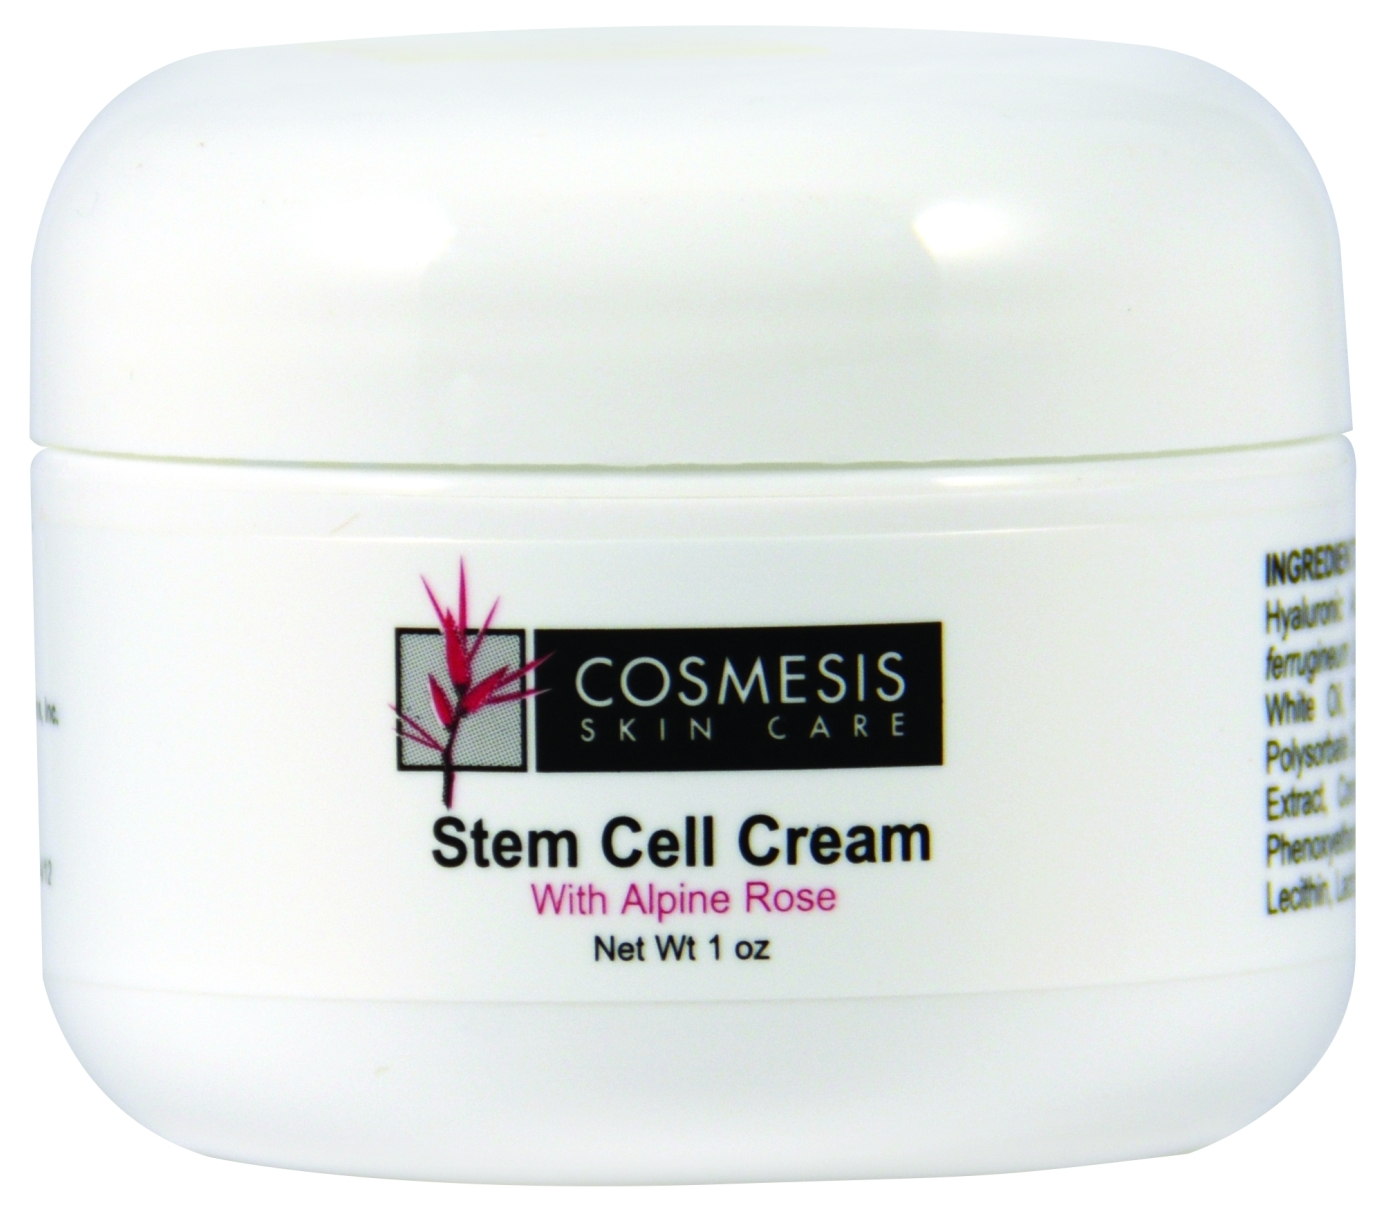 Stem Cell Cream with Alpine Rose 1 oz  (30 ml) by Life Extension